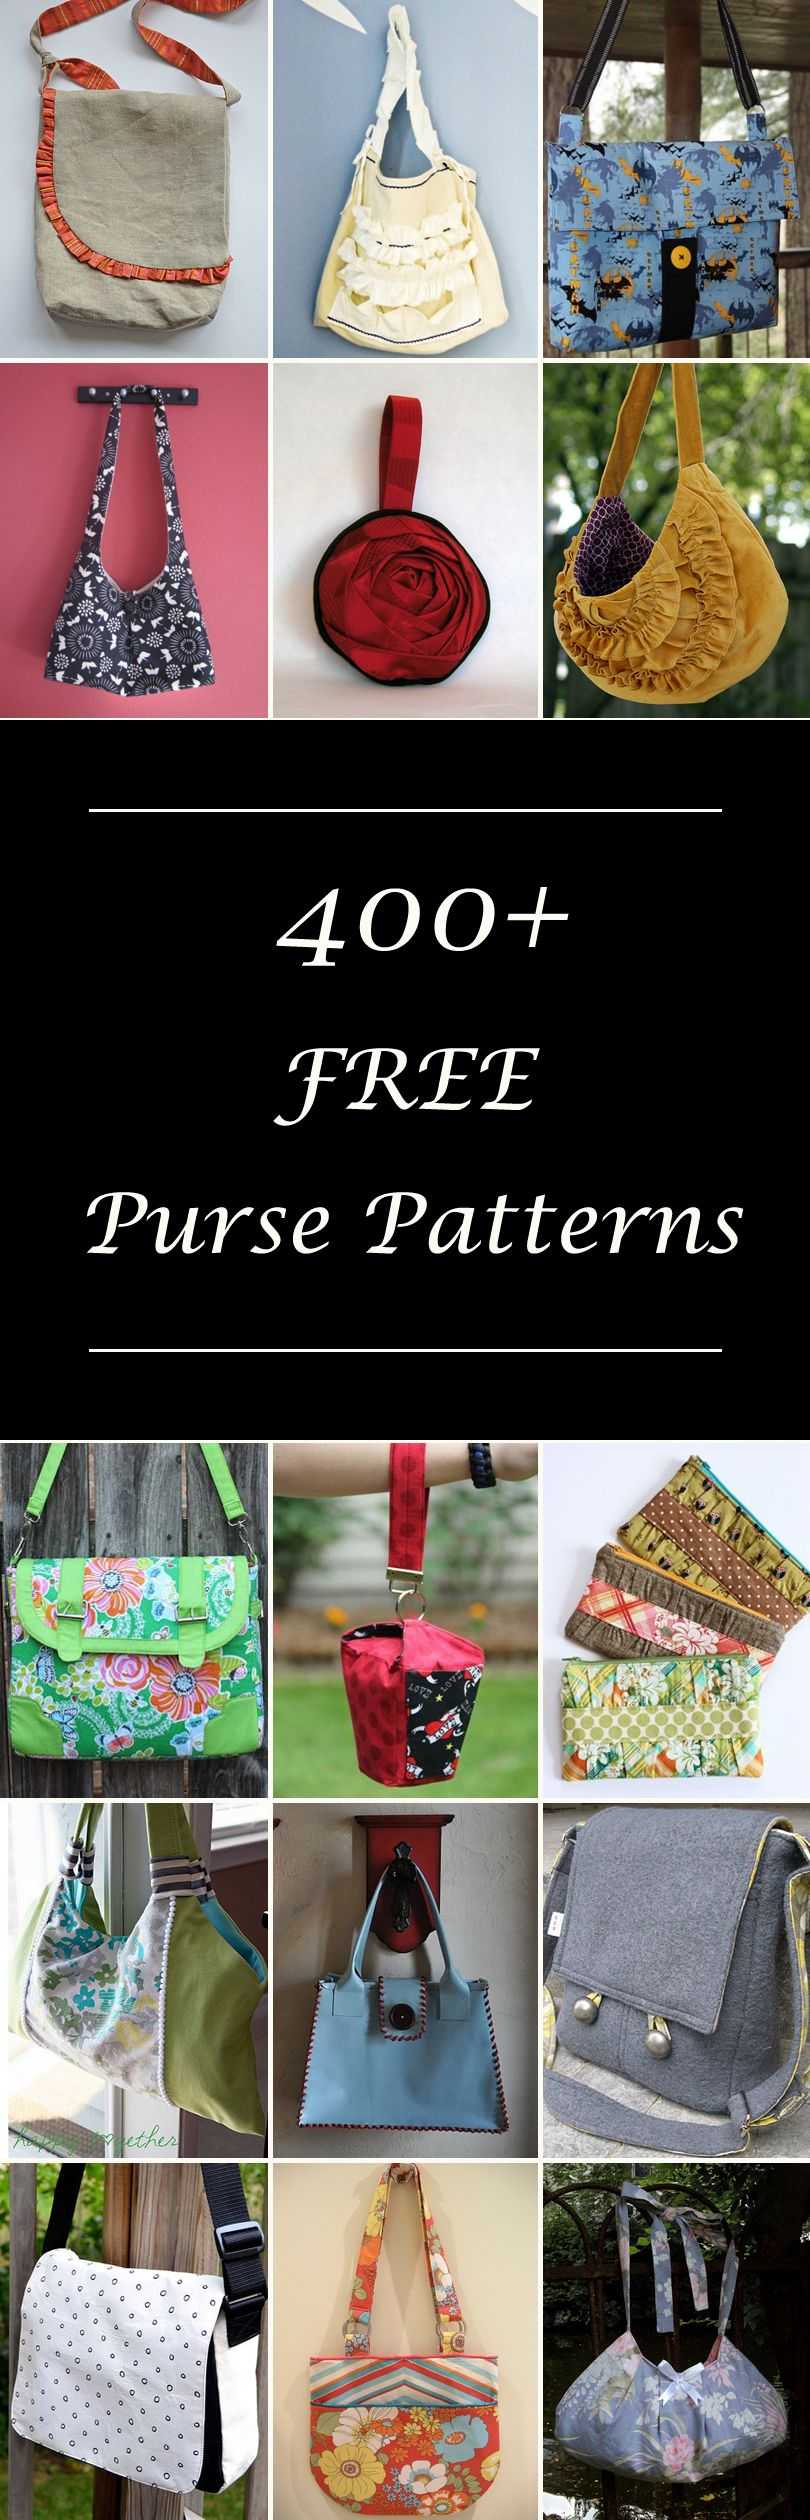 400 free purse patterns easy designs large bags and handbag lots of free purse handbag patterns to sew many simple and easy designs small and large bags hobo messenger bags clutch coin purses and more jeuxipadfo Choice Image